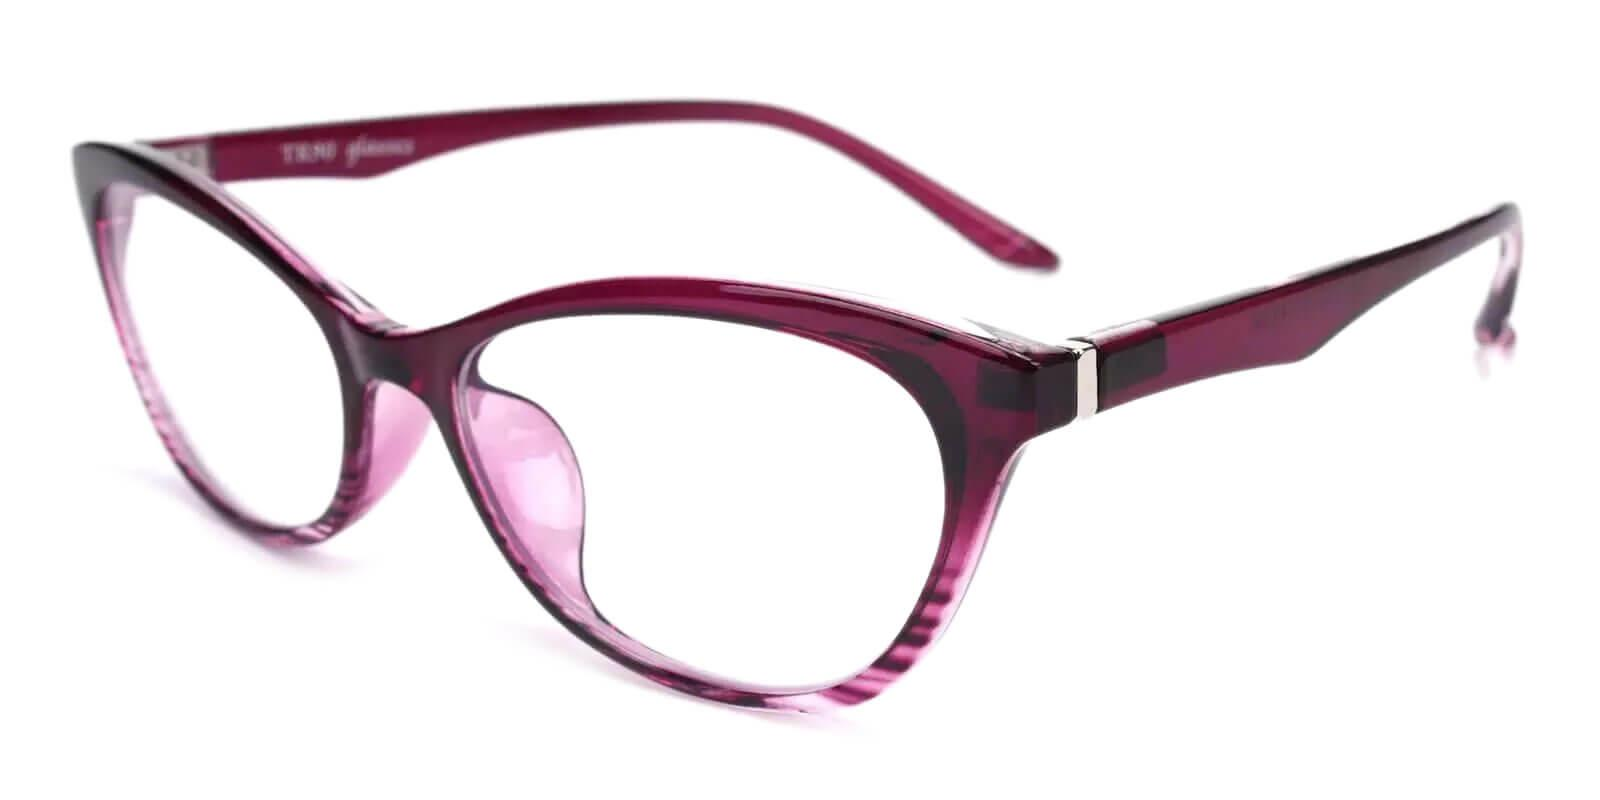 Arya Purple TR UniversalBridgeFit , Eyeglasses Frames from ABBE Glasses